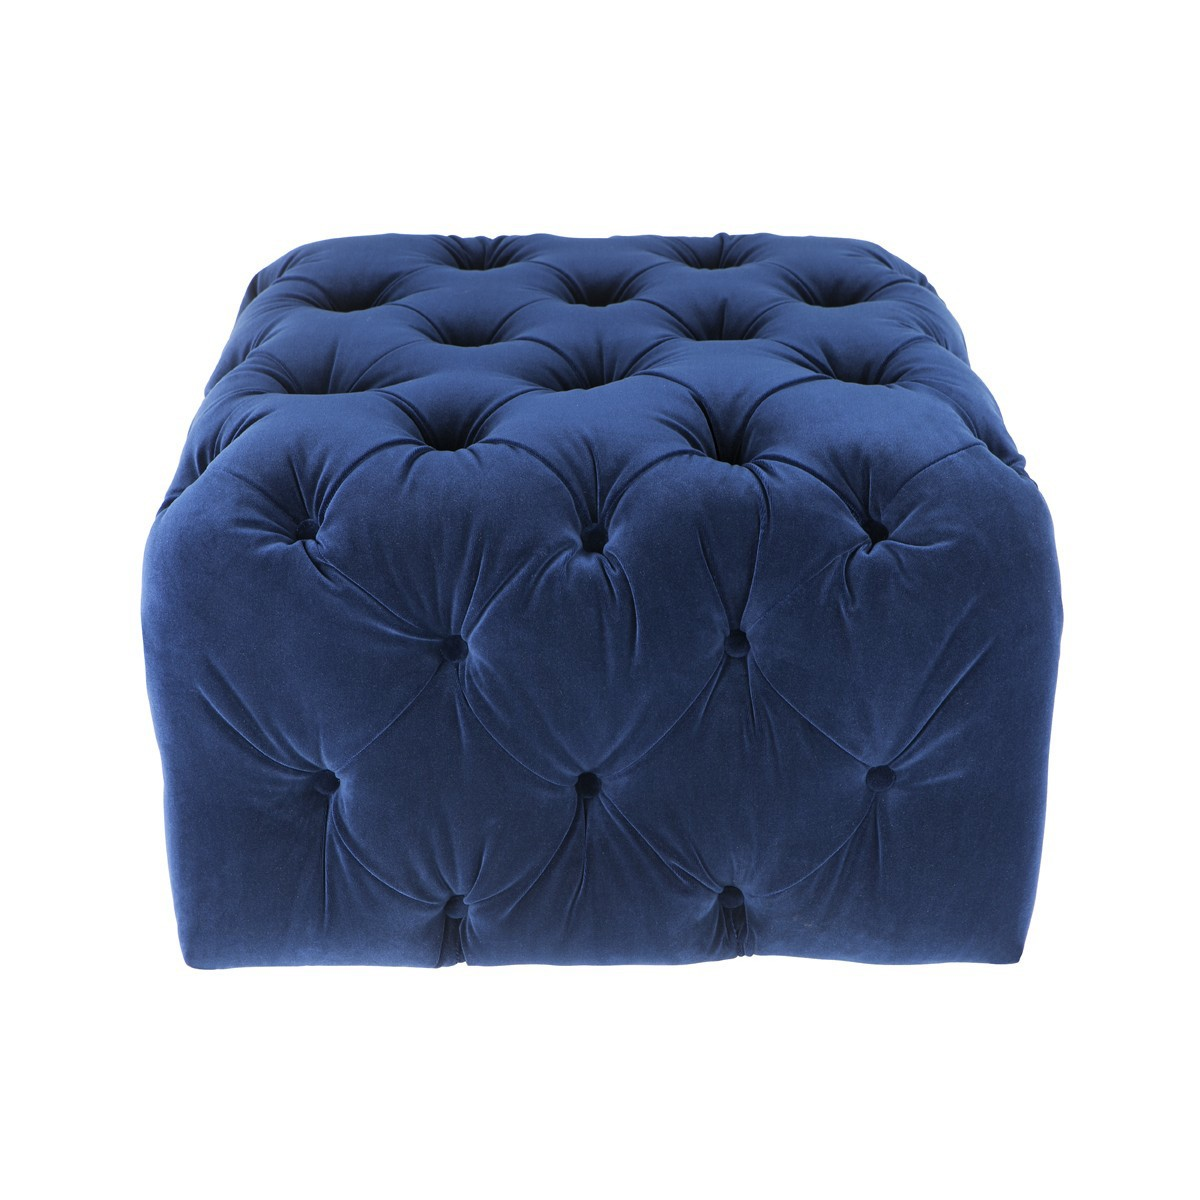 Leah Tufted Fabric Square Pouf, Navy